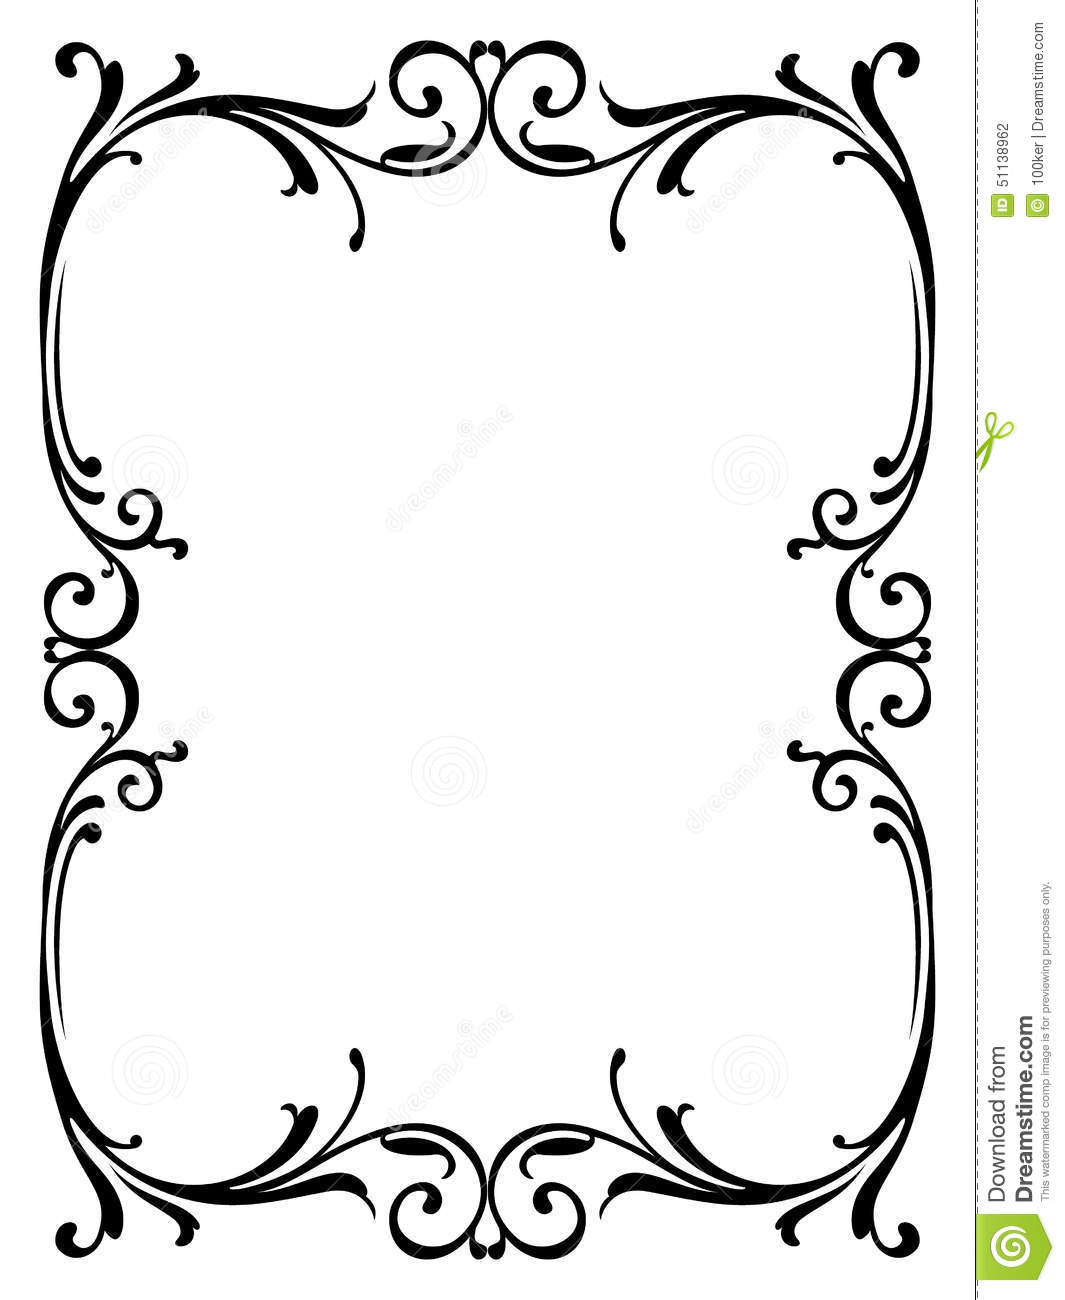 Free Online Architecture Design Calligraphy Penmanship Curly Baroque Frame Black Stock